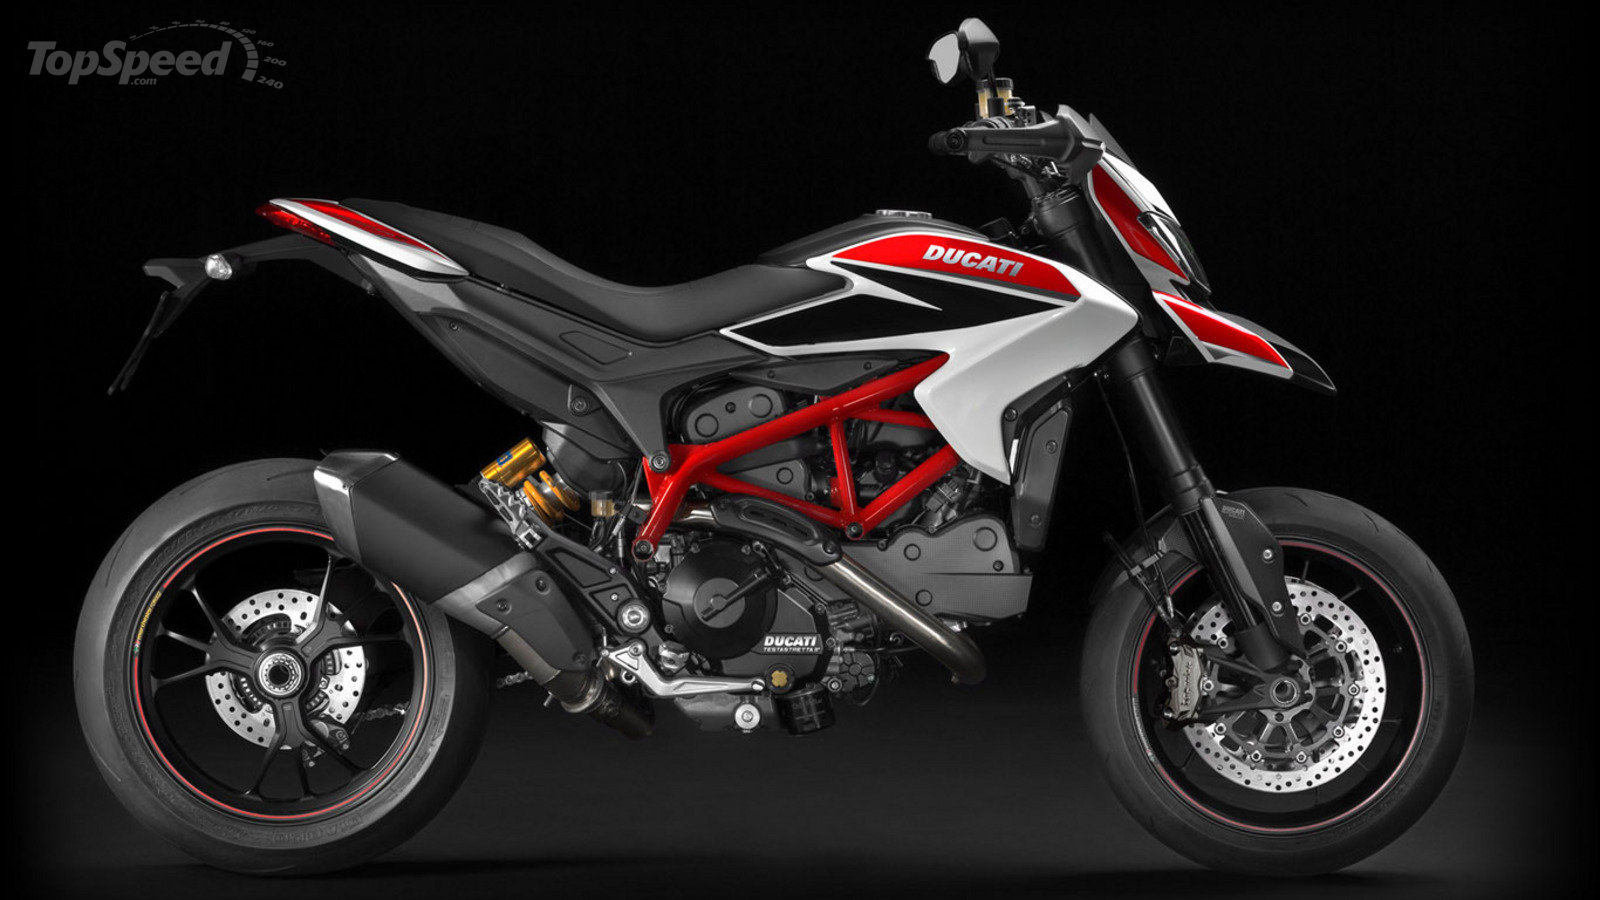 Ducati Hypermotard News And Reviews | Top Speed